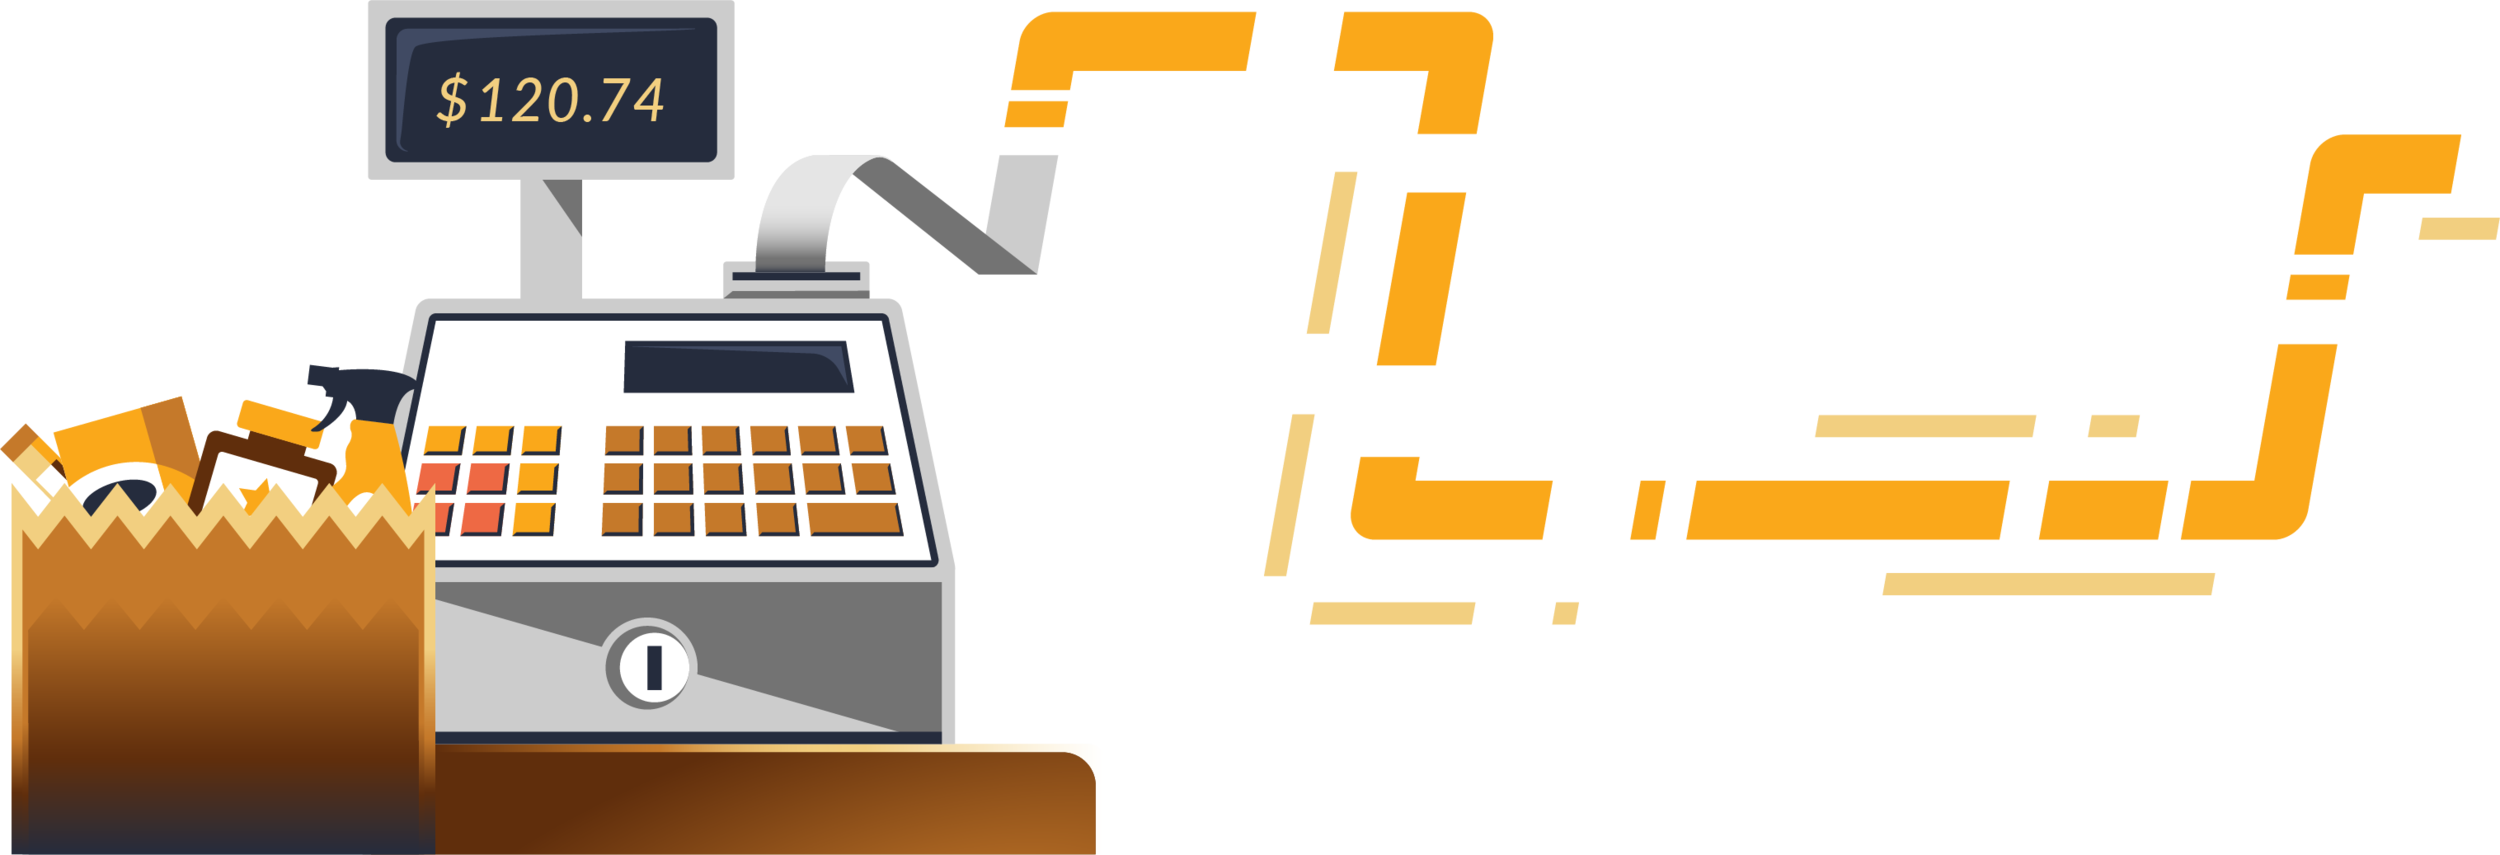 Purchase Data Metrics, near-real-time purchase signal from cash register, spot illustration